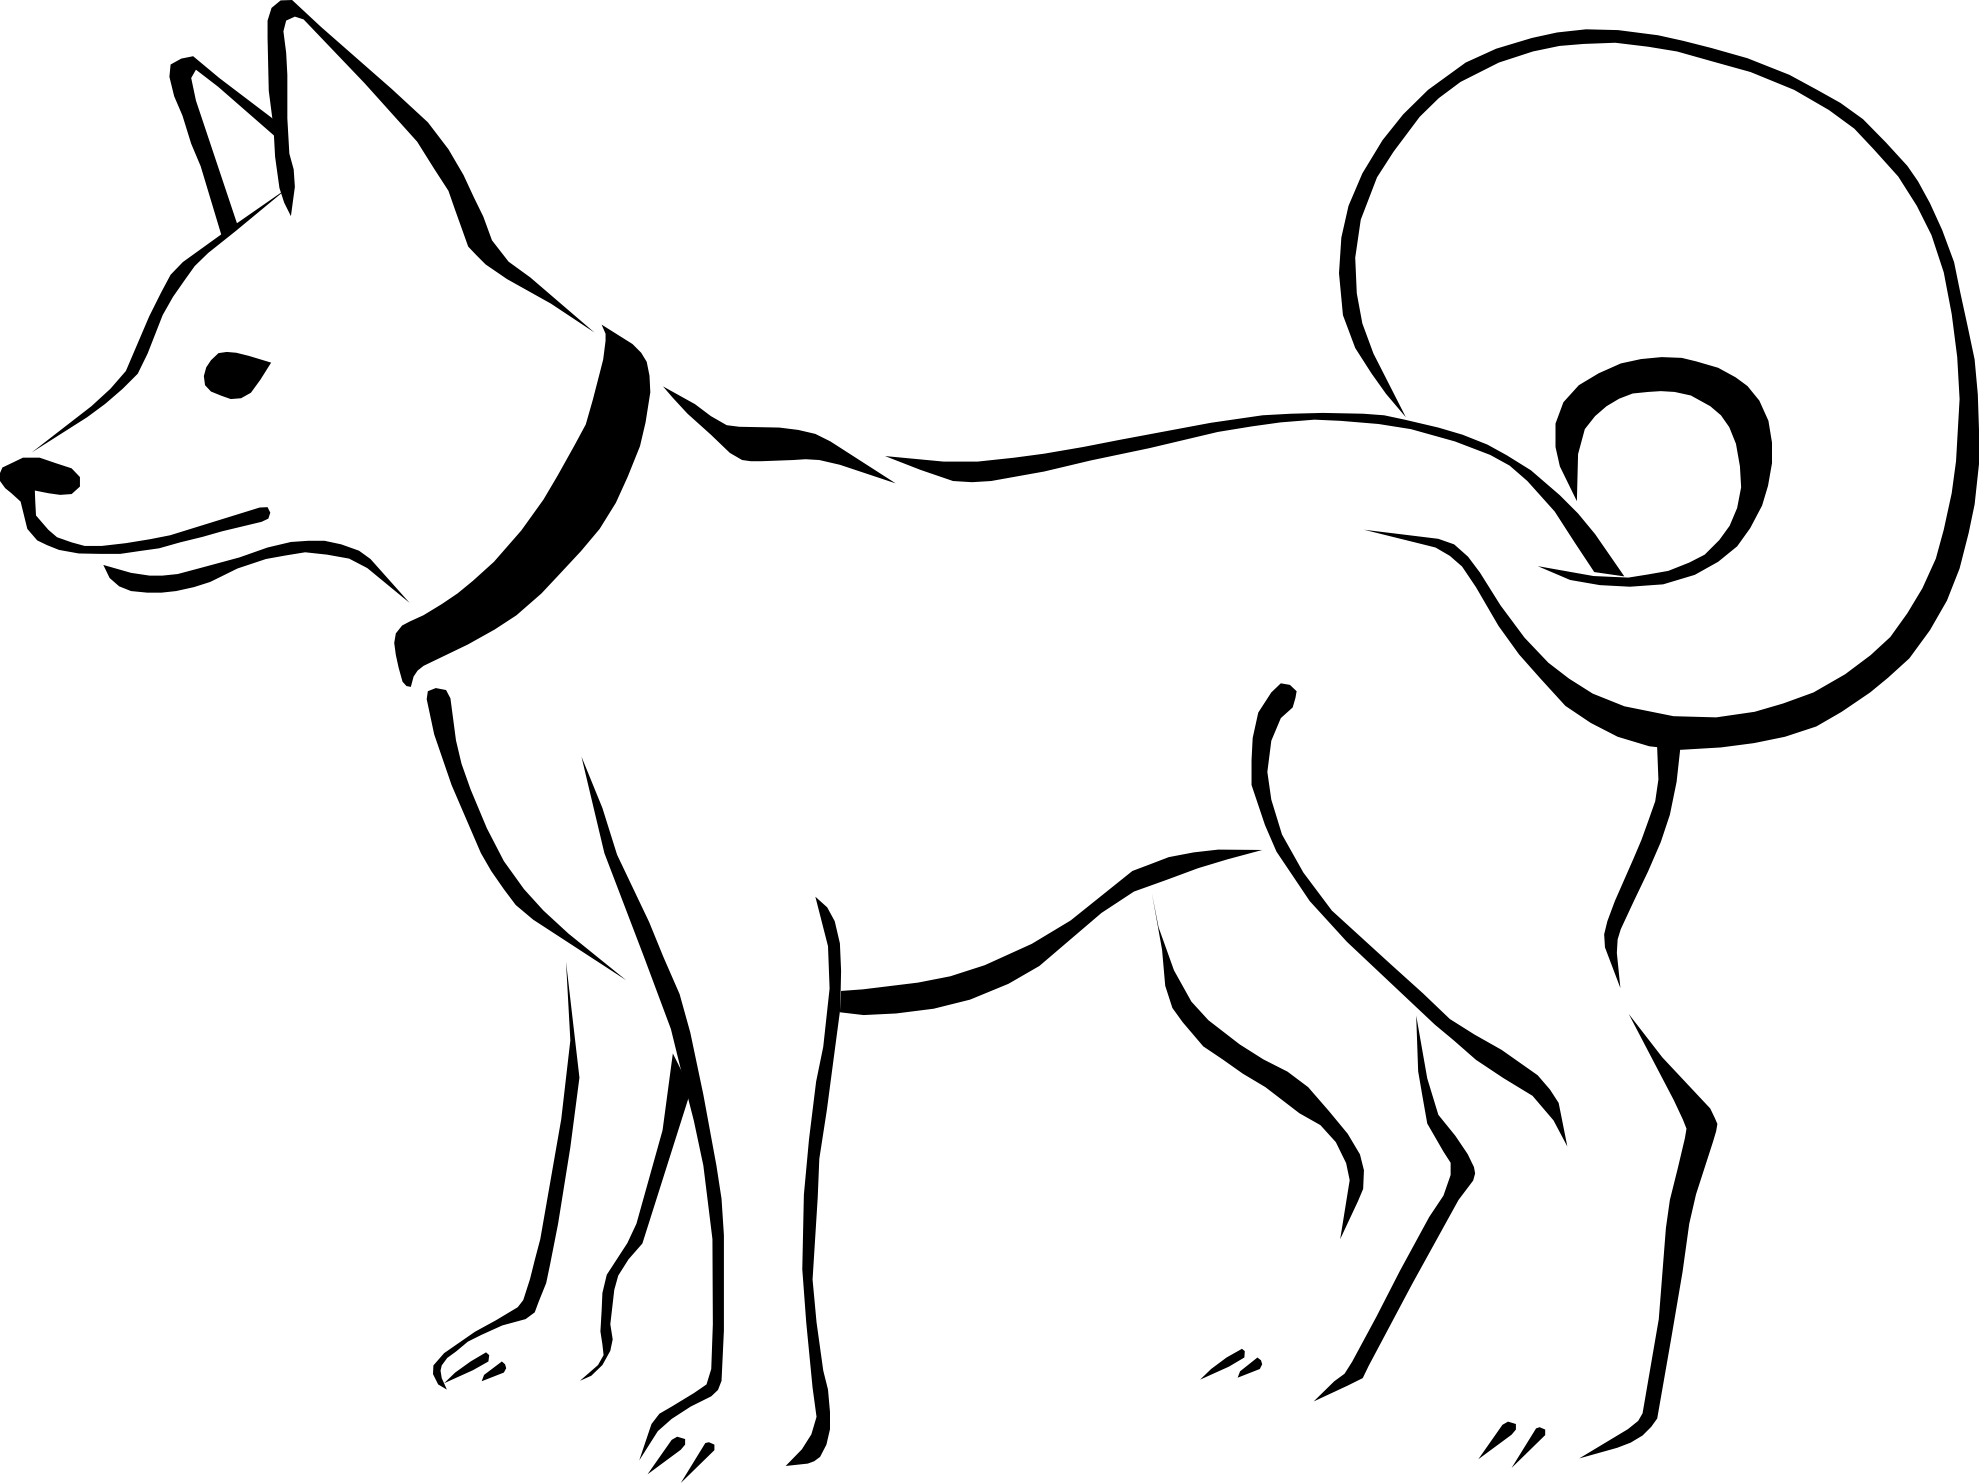 Line Drawings Of Cute Animals : Dog line drawing clipart best